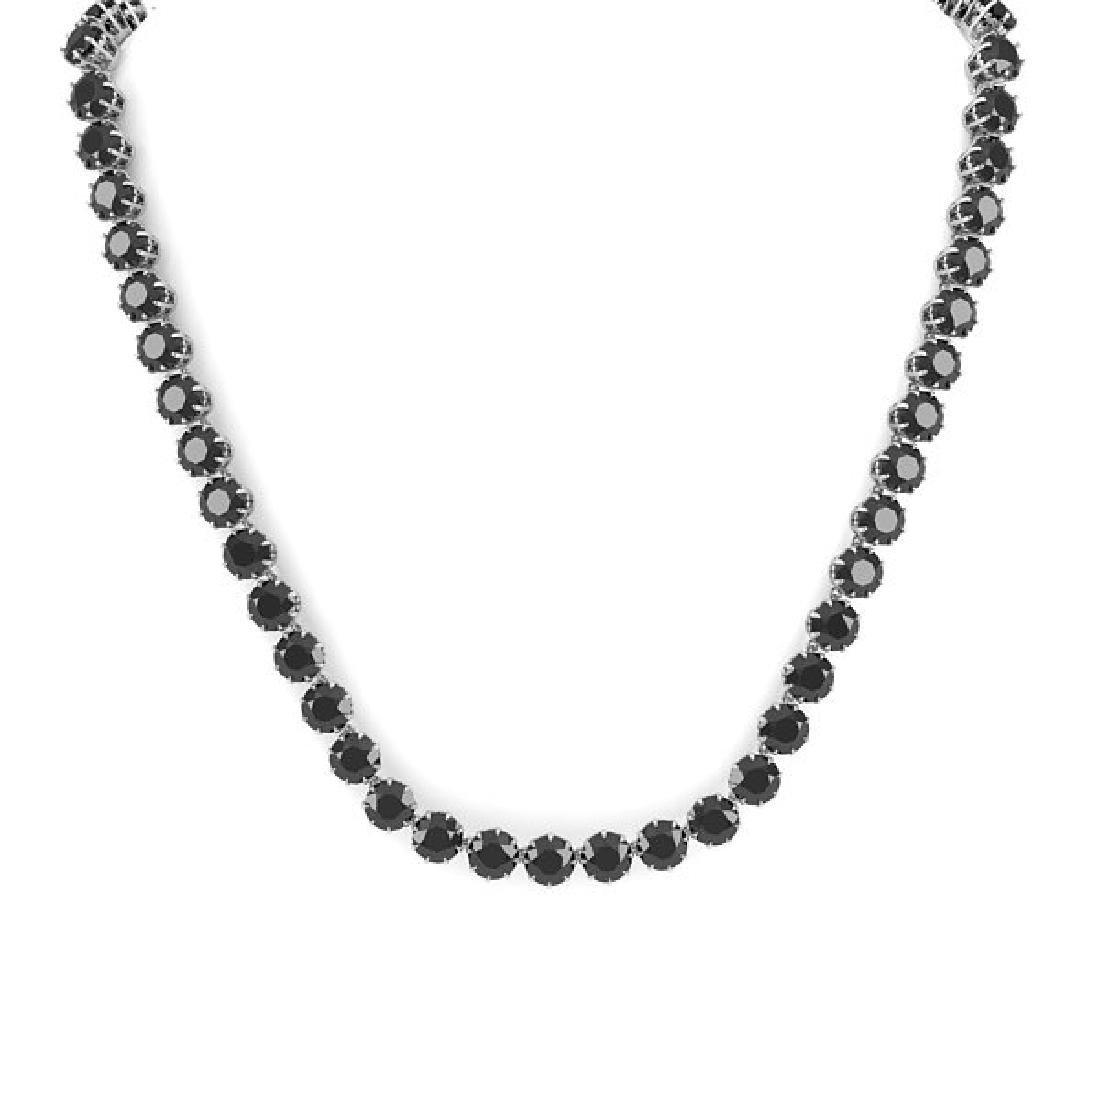 54 CTW Certified Black VS Diamond Necklace 18K White - 3